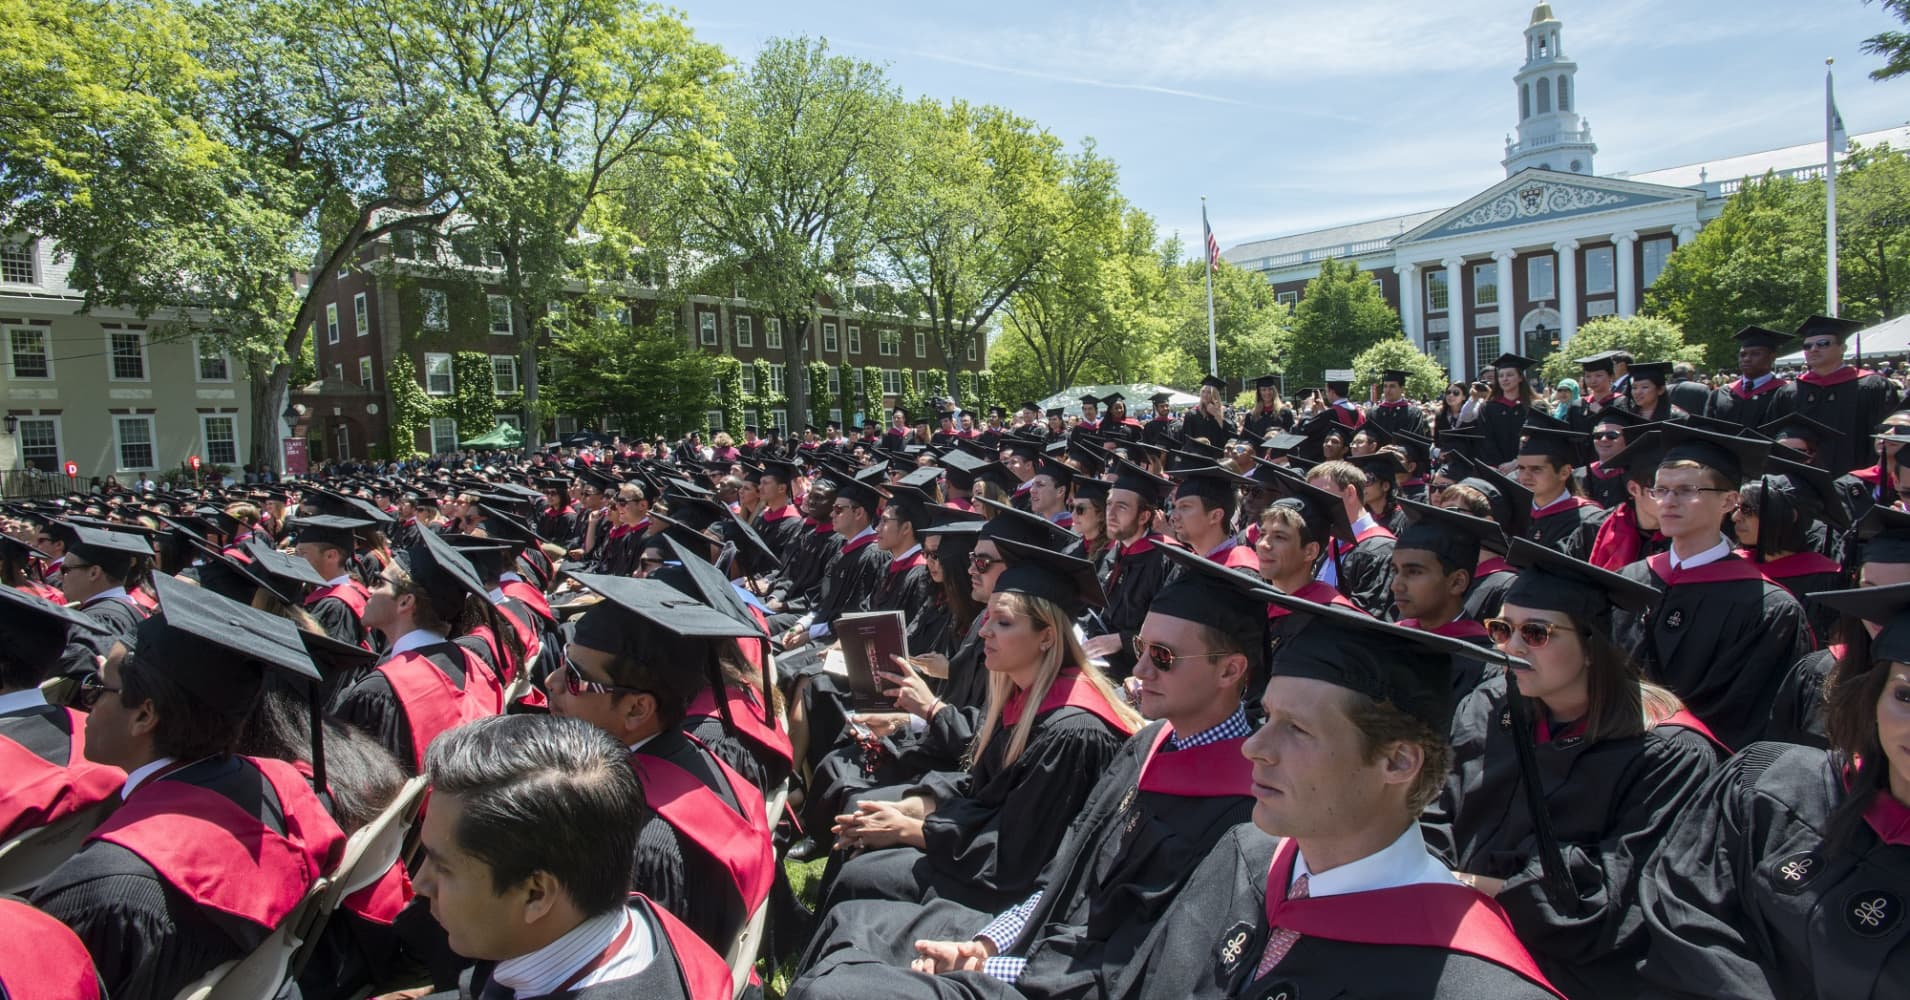 Harvard Business School graduation. Massachusetts ranks No. 1 in the U.S. for Education.